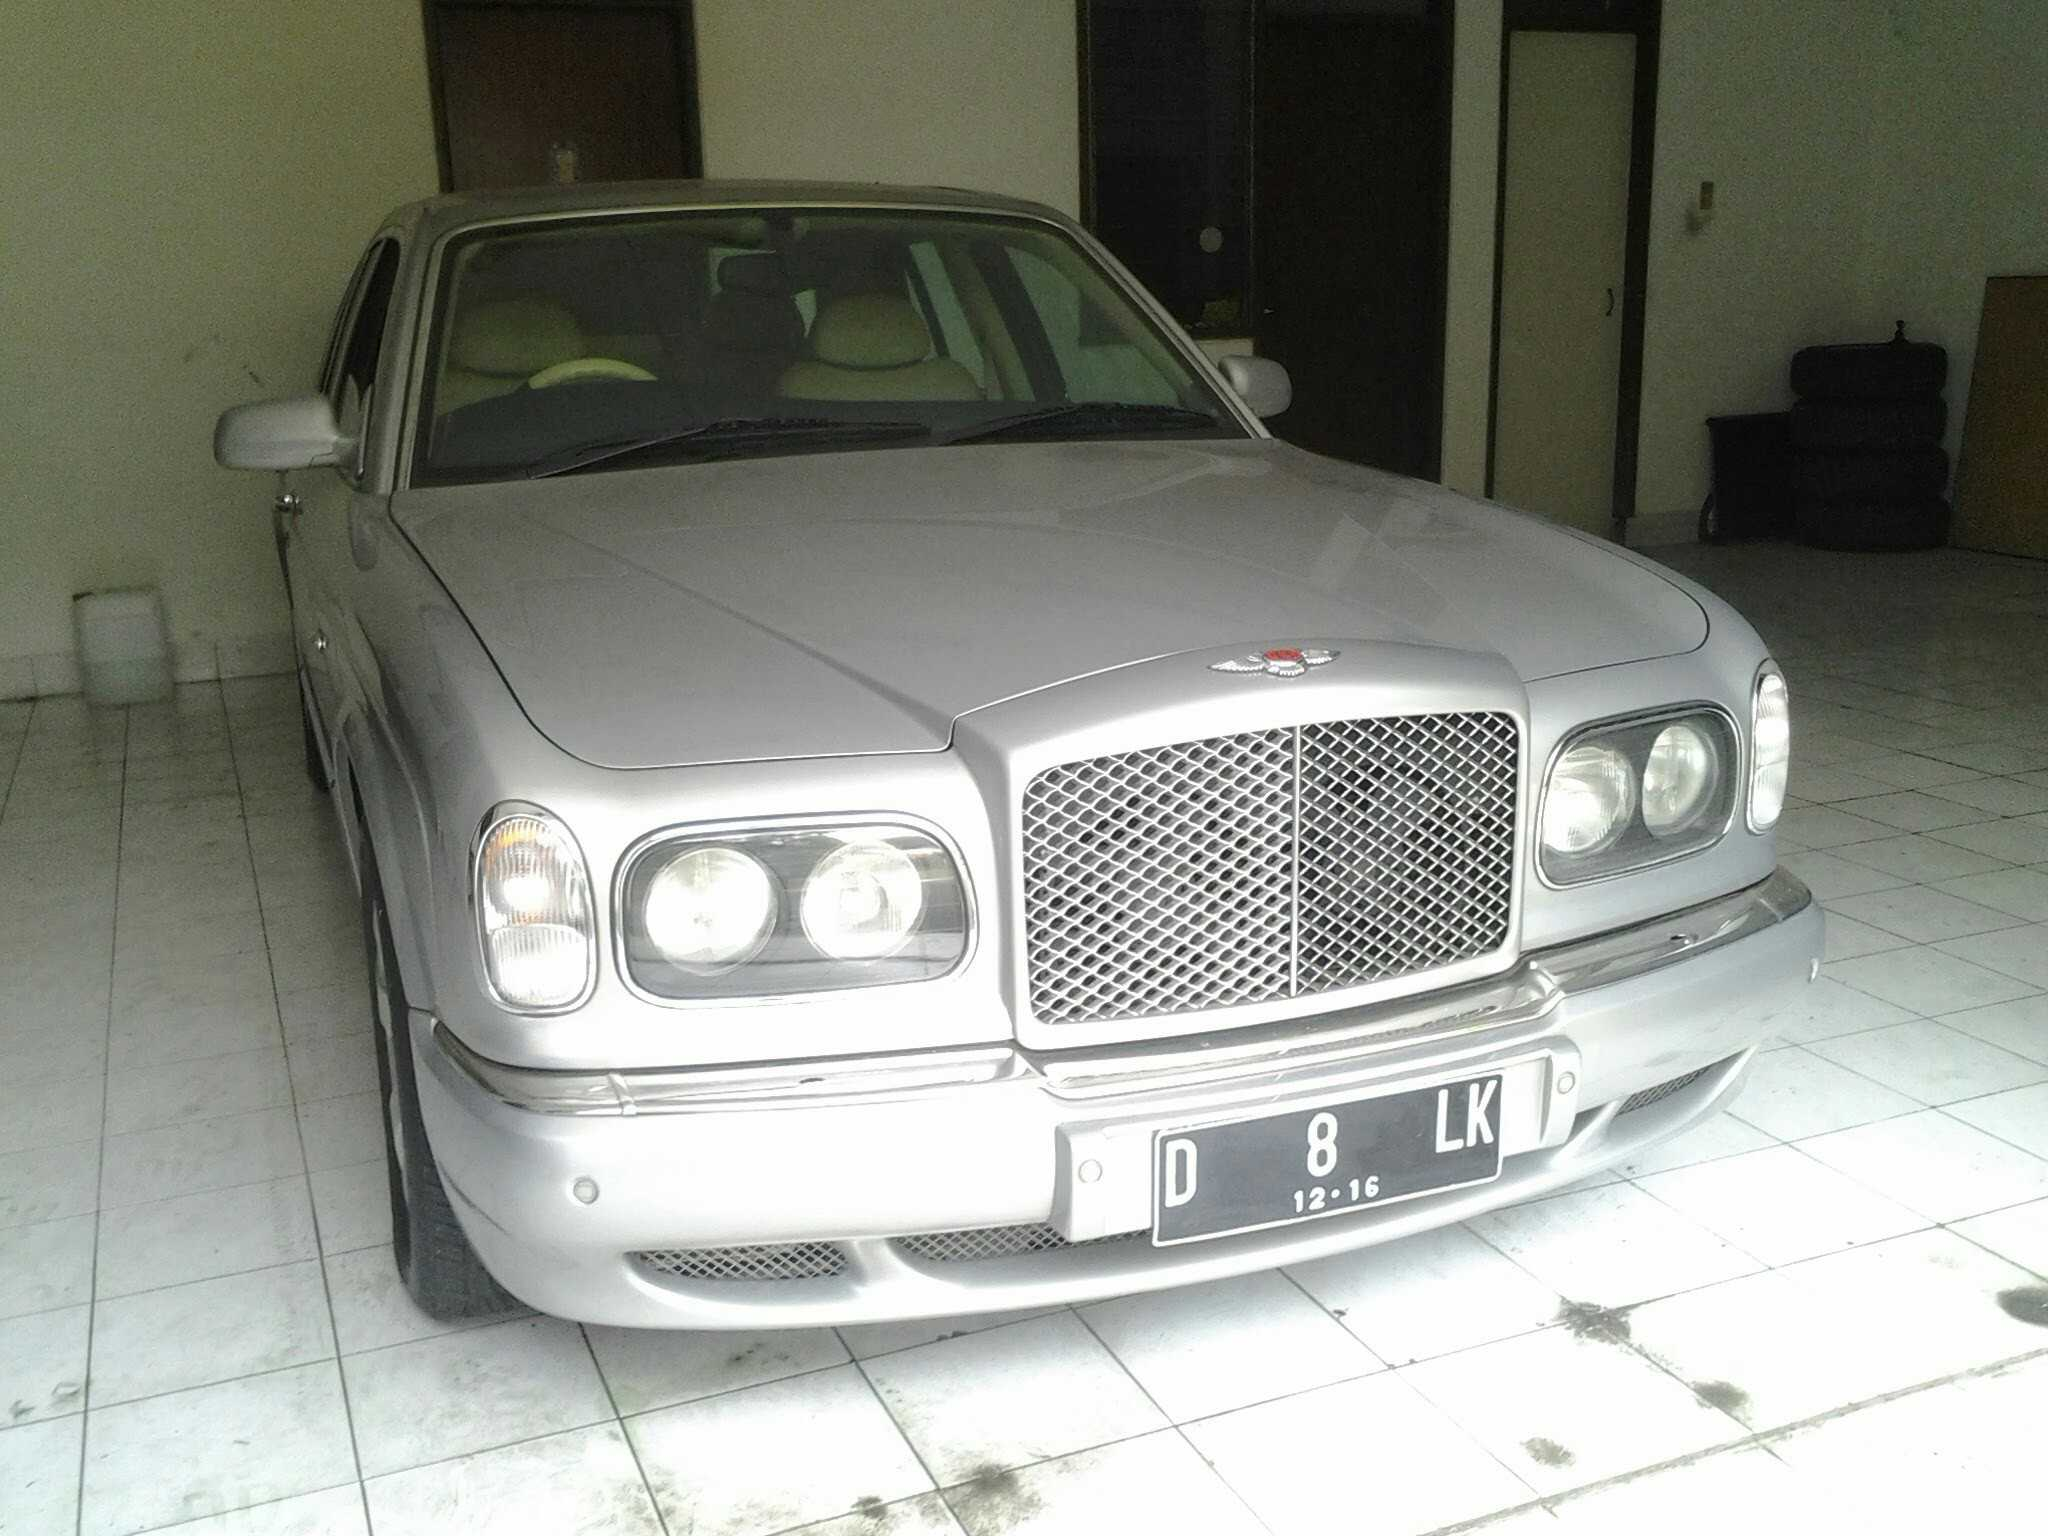 sewa bentley, rental bentley, rental mobil bentley, , rental mobil pengantin, sewa mobil pengantin, wedding car